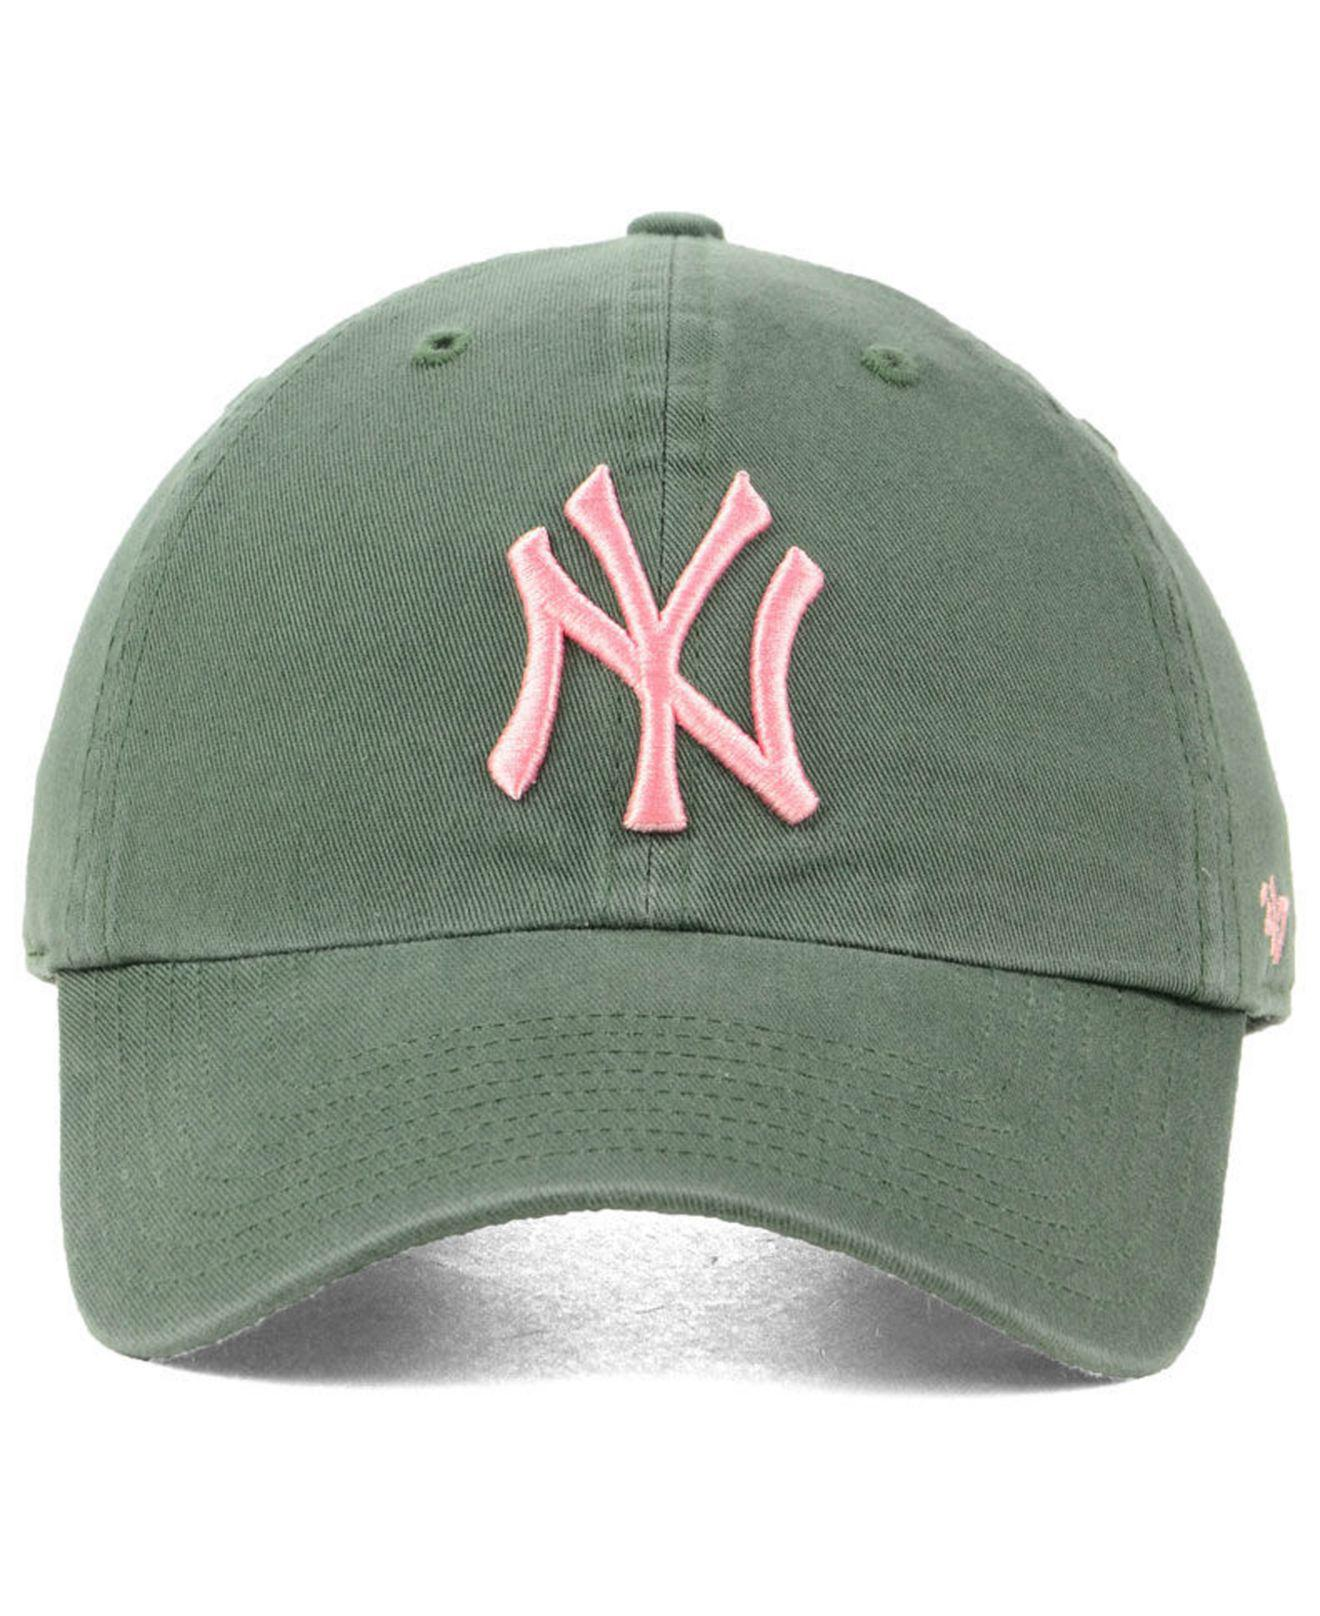 573c83d13c8 Lyst - 47 Brand New York Yankees Moss Pink Clean Up Cap in Green